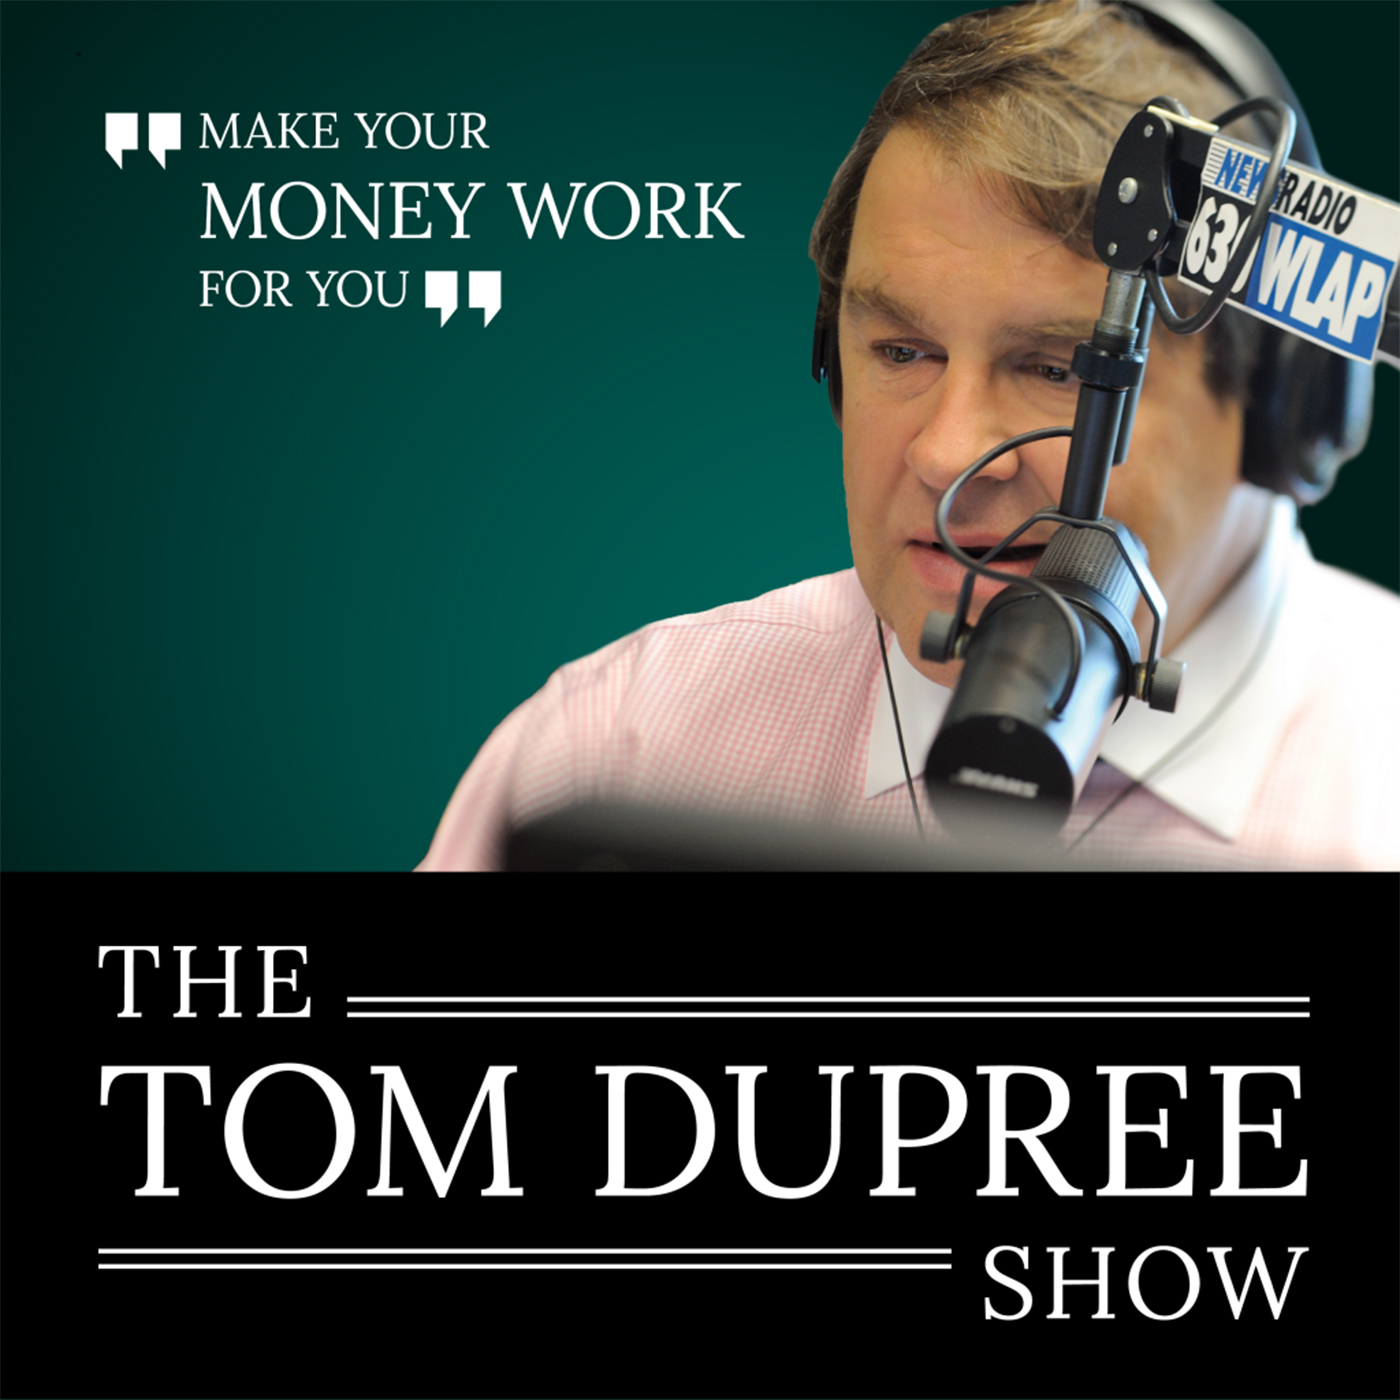 The Tom Dupree Show  8-9am  7-20-19